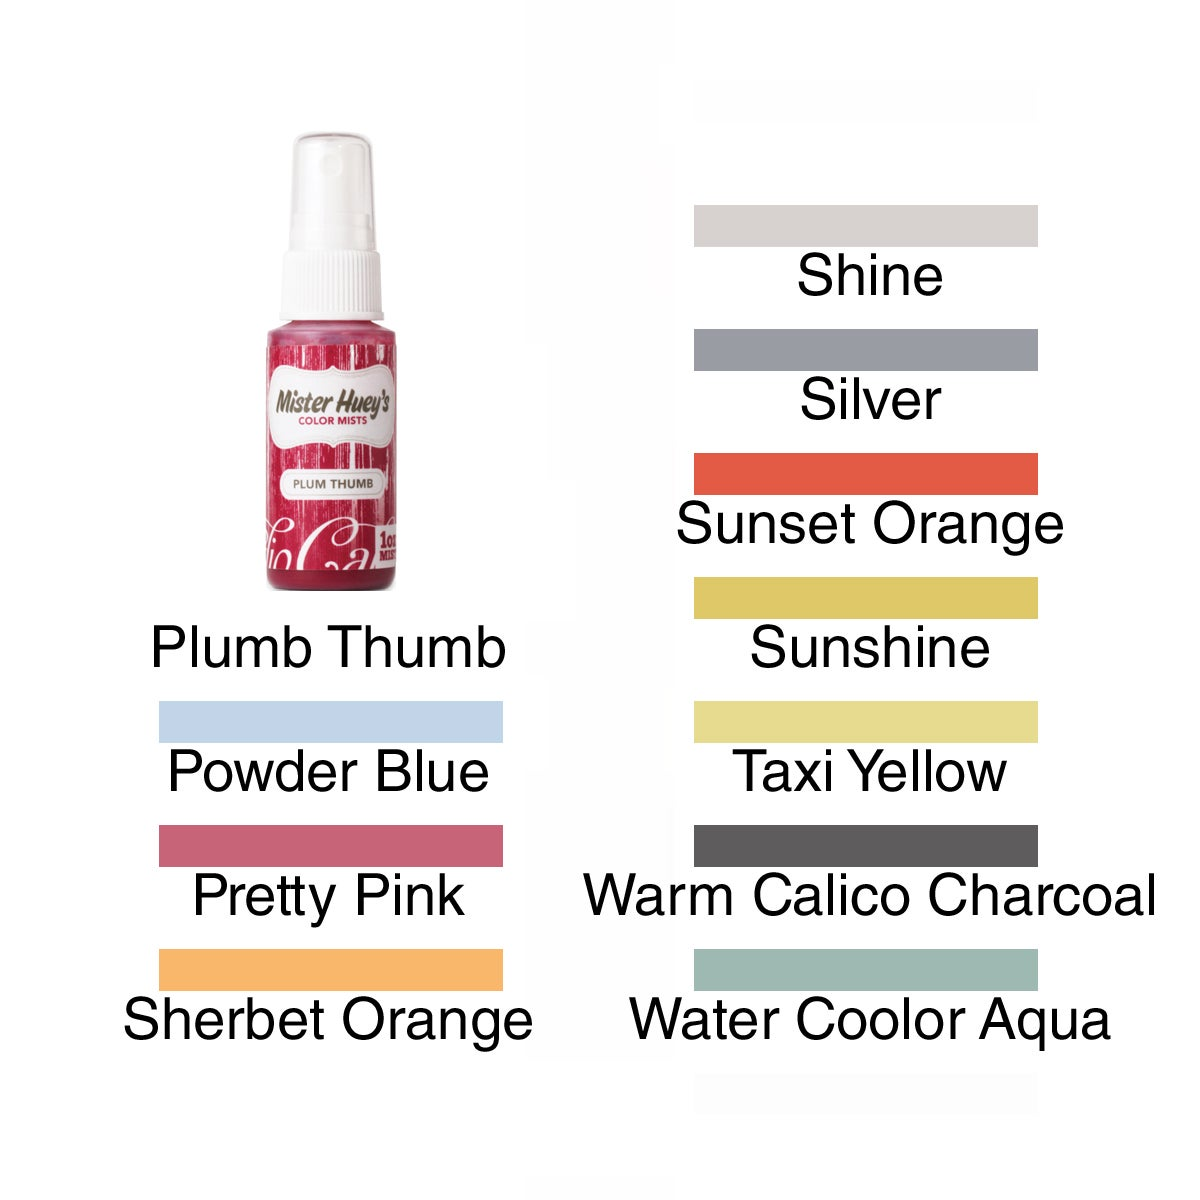 Mister Huey's 1-Ounce Color Misting Spray